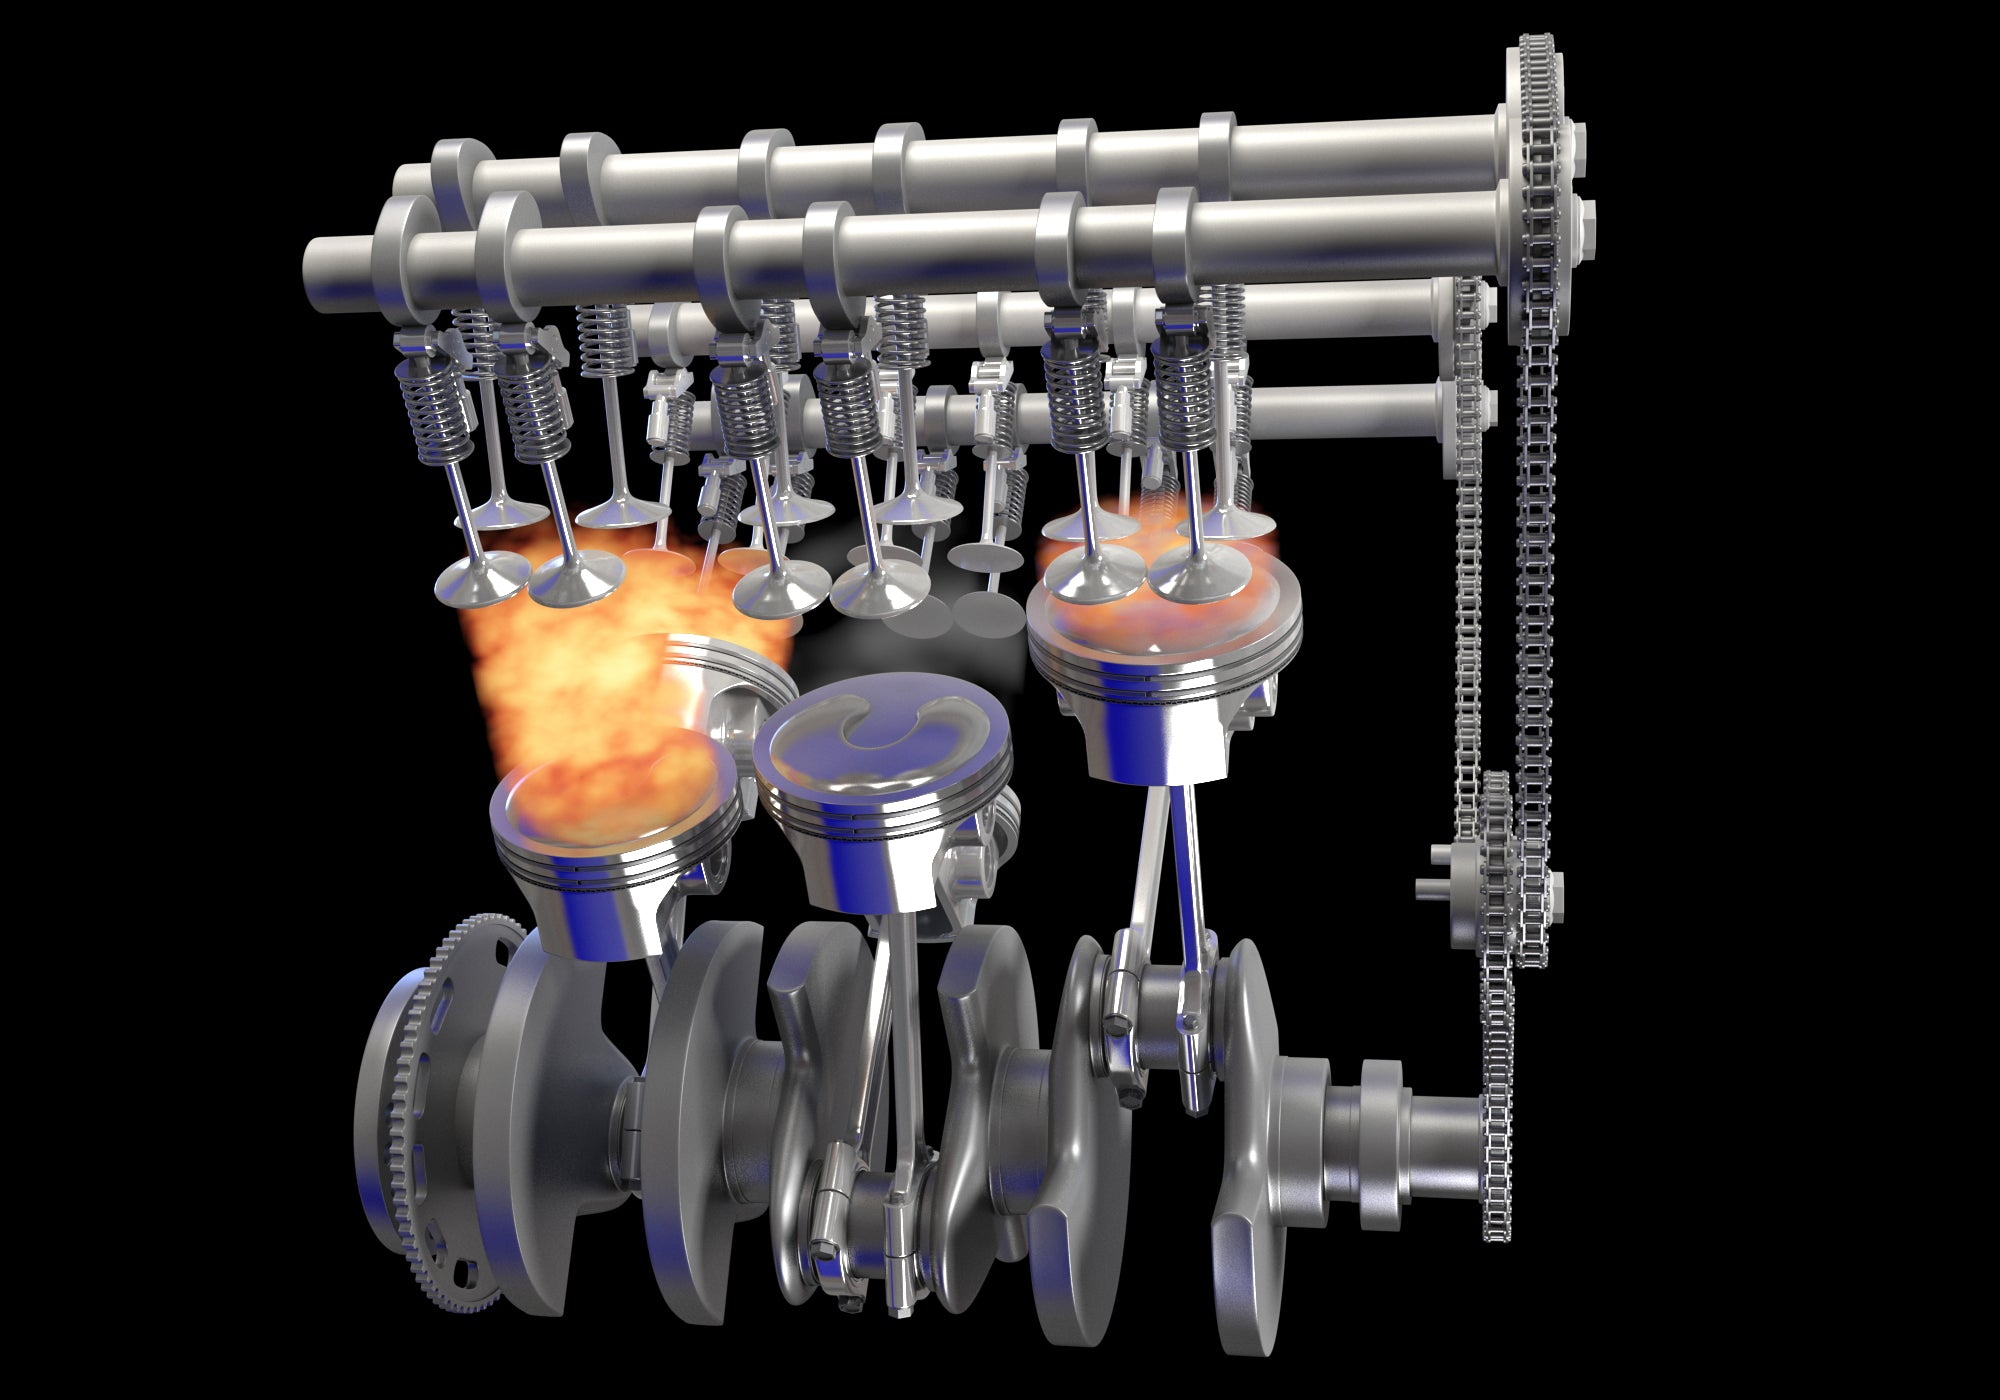 Animated V6 Engine